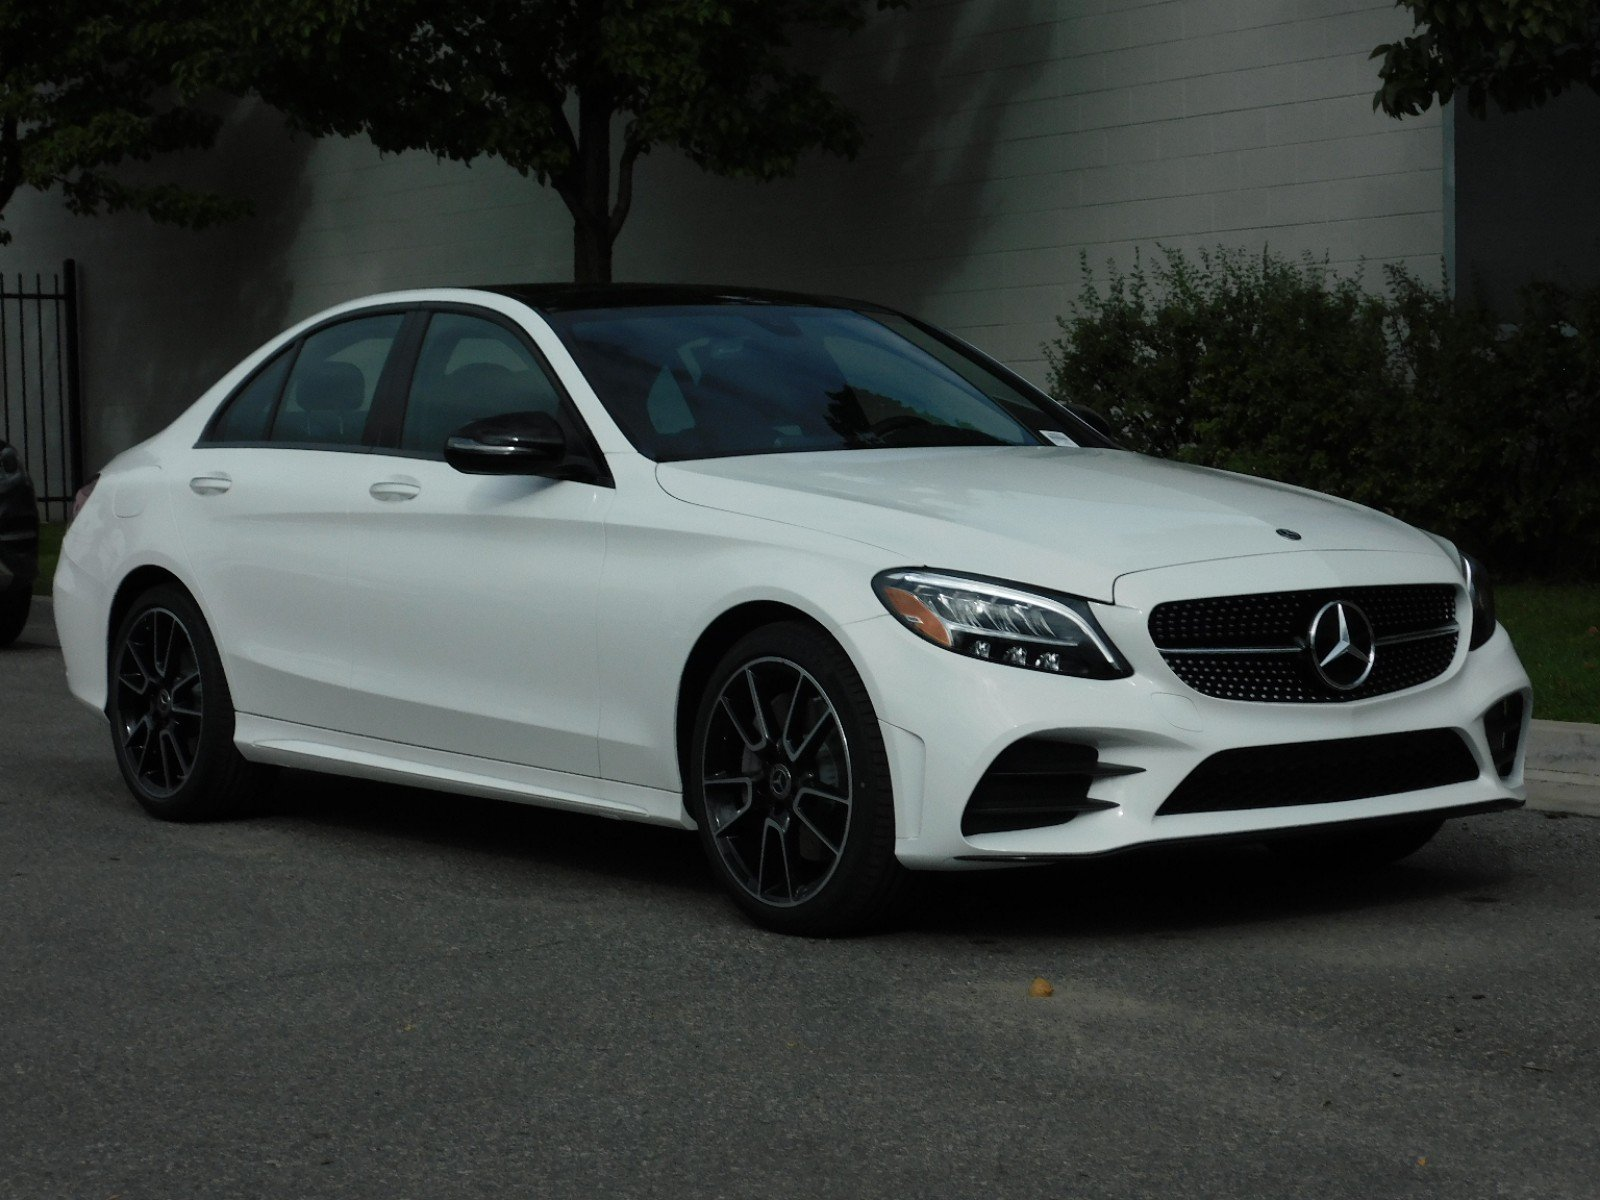 Ken Garff Mercedes >> New 2019 Mercedes-Benz C-Class C 300 4dr Car #1M9047 | Ken